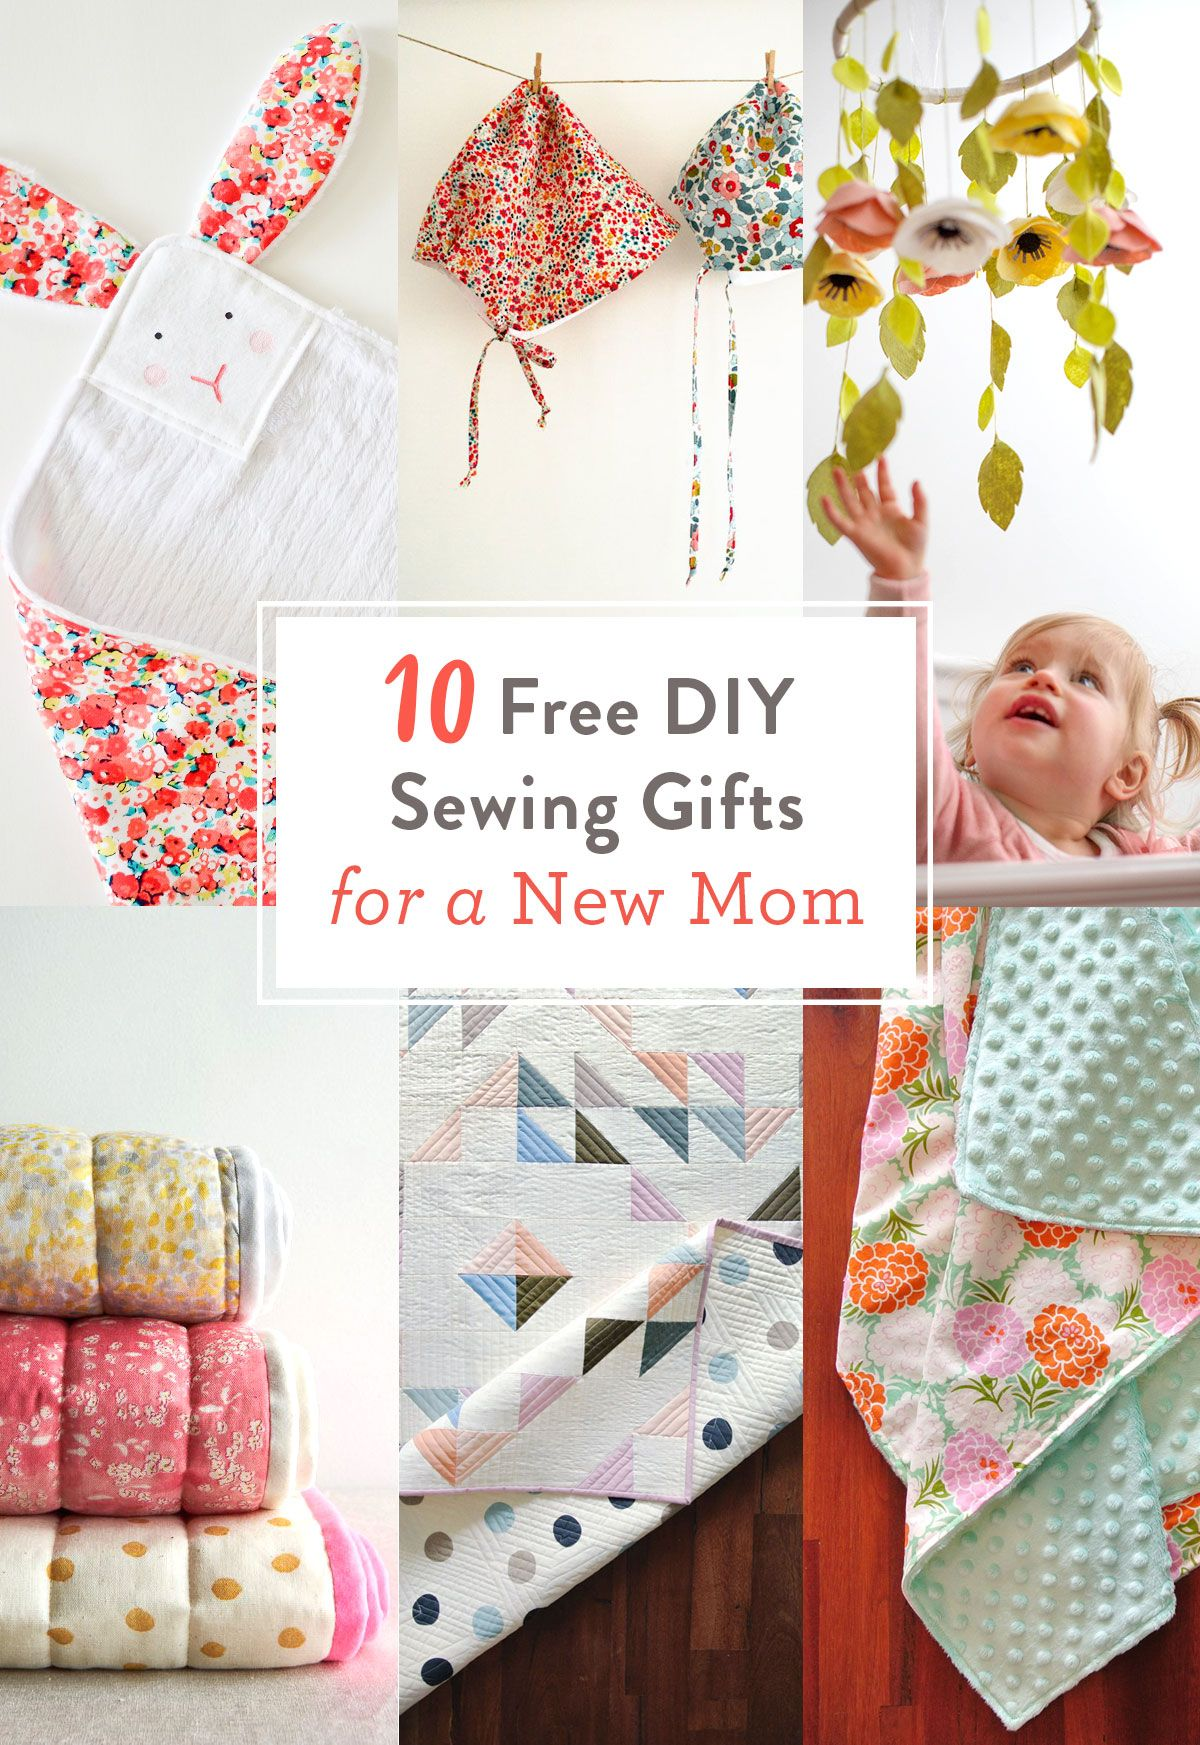 FREE DIY Sewing Gifts for a New Mom | Quilting Shortcuts and ...